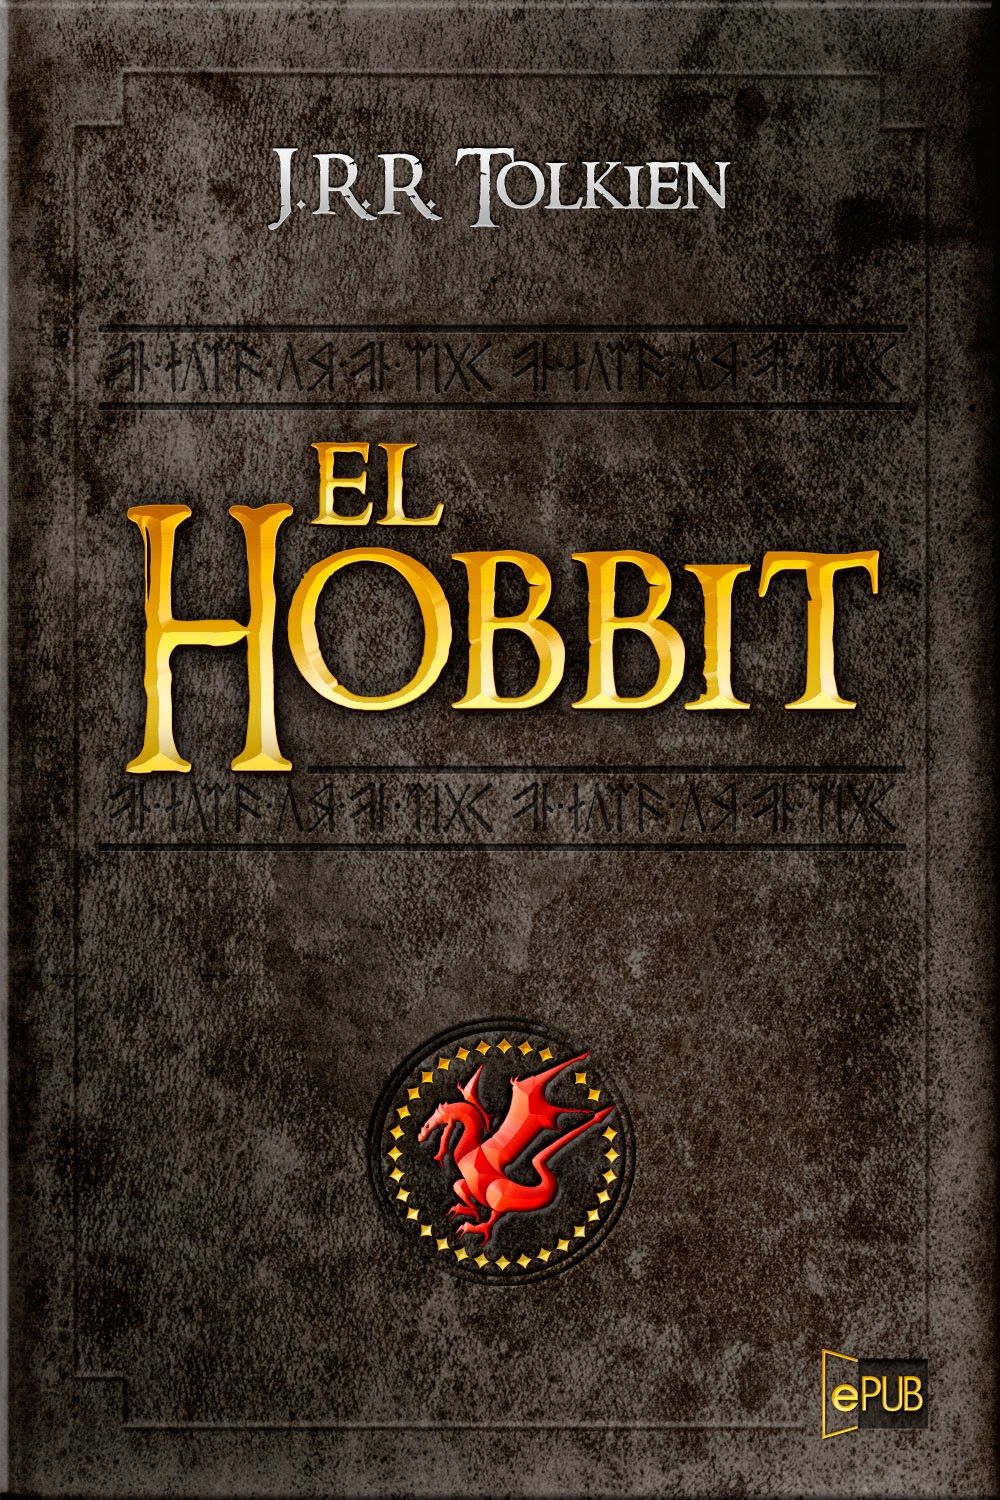 J R R Tolkien The Hobbit (LOTR Middle Earth) 50th Anniversery